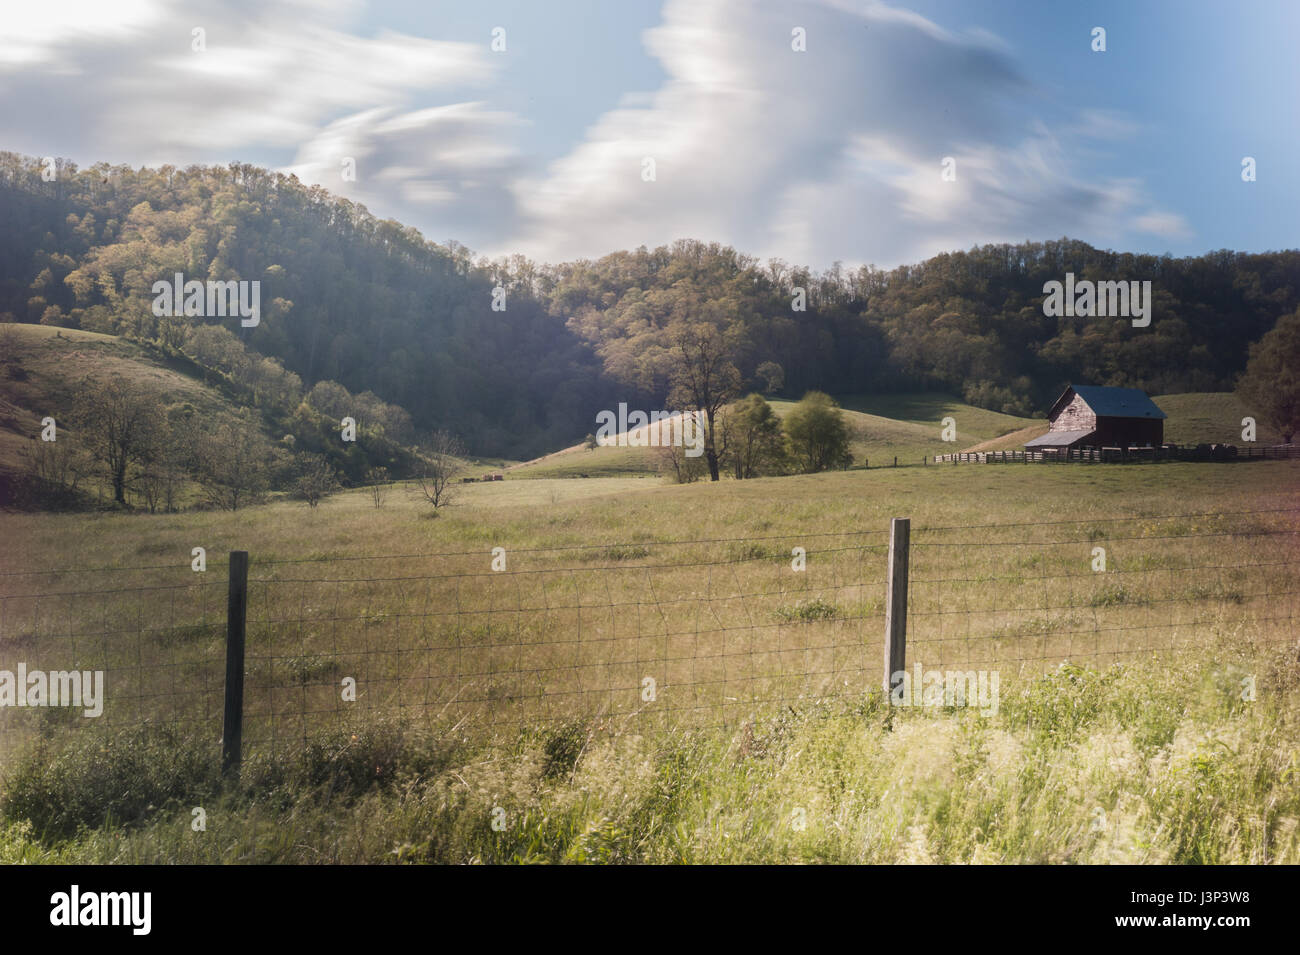 Farm and fence in rural virginia. - Stock Image